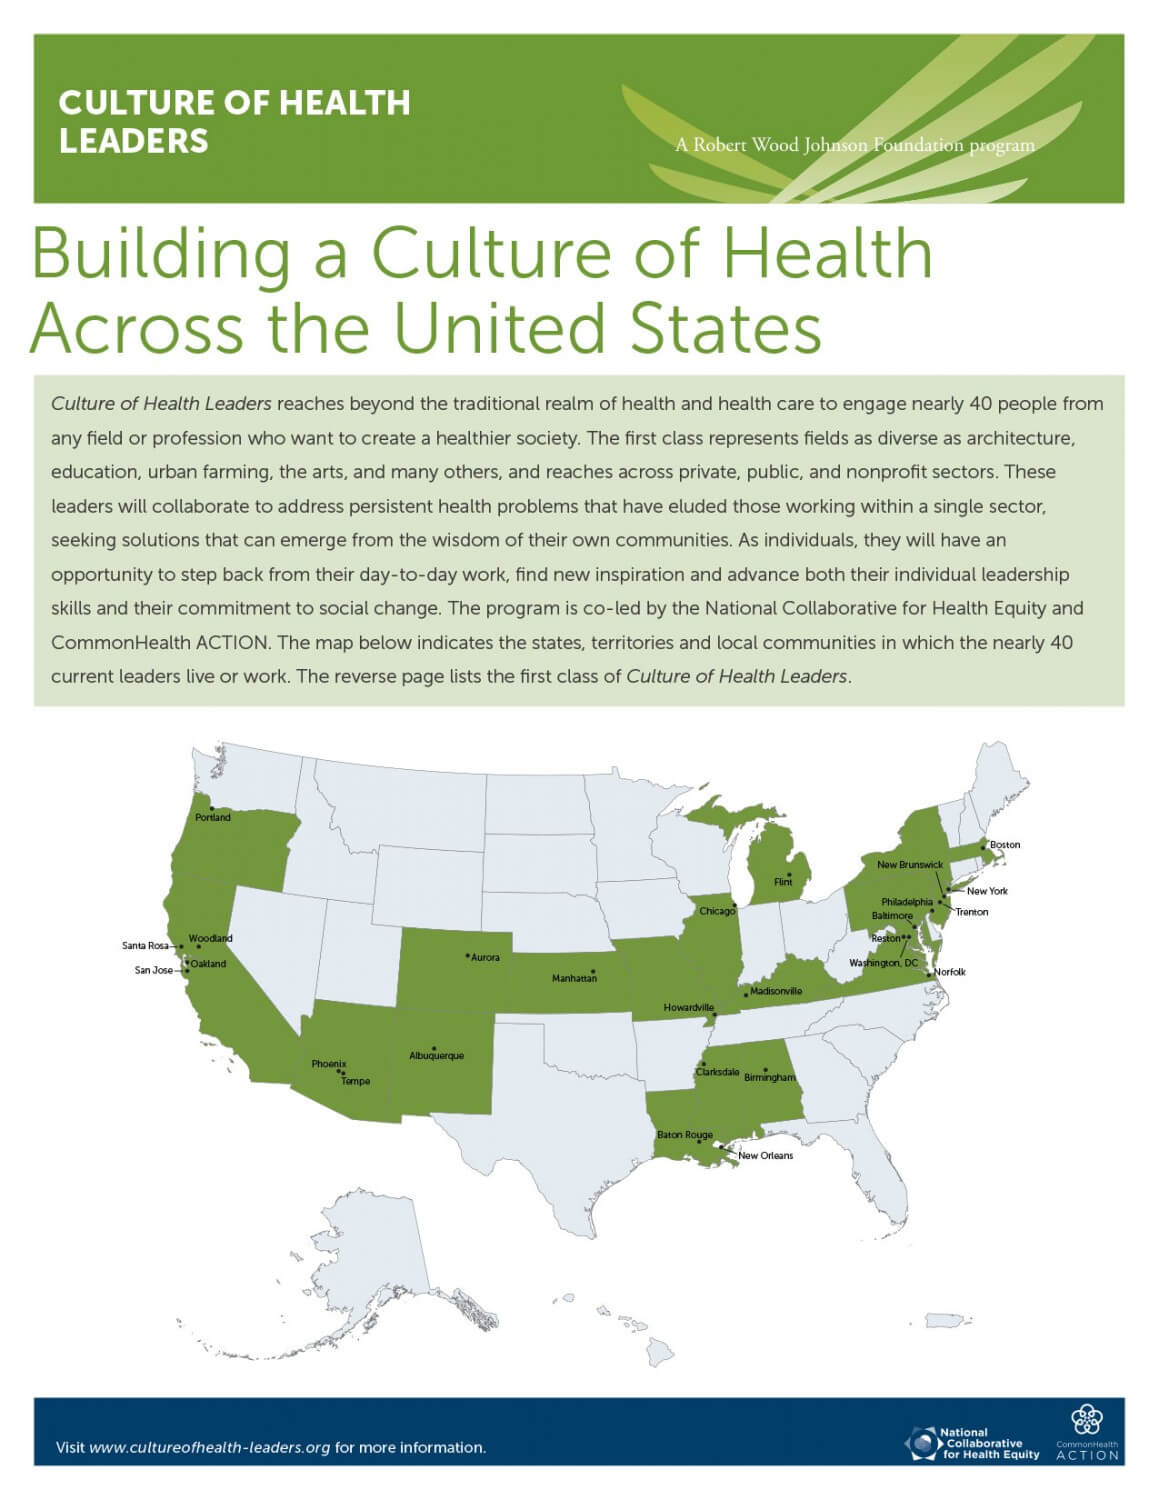 New RWJF Leadership Program Launches: Nearly 40 Social Innovators From Across Sectors Selected to Build Culture of Health